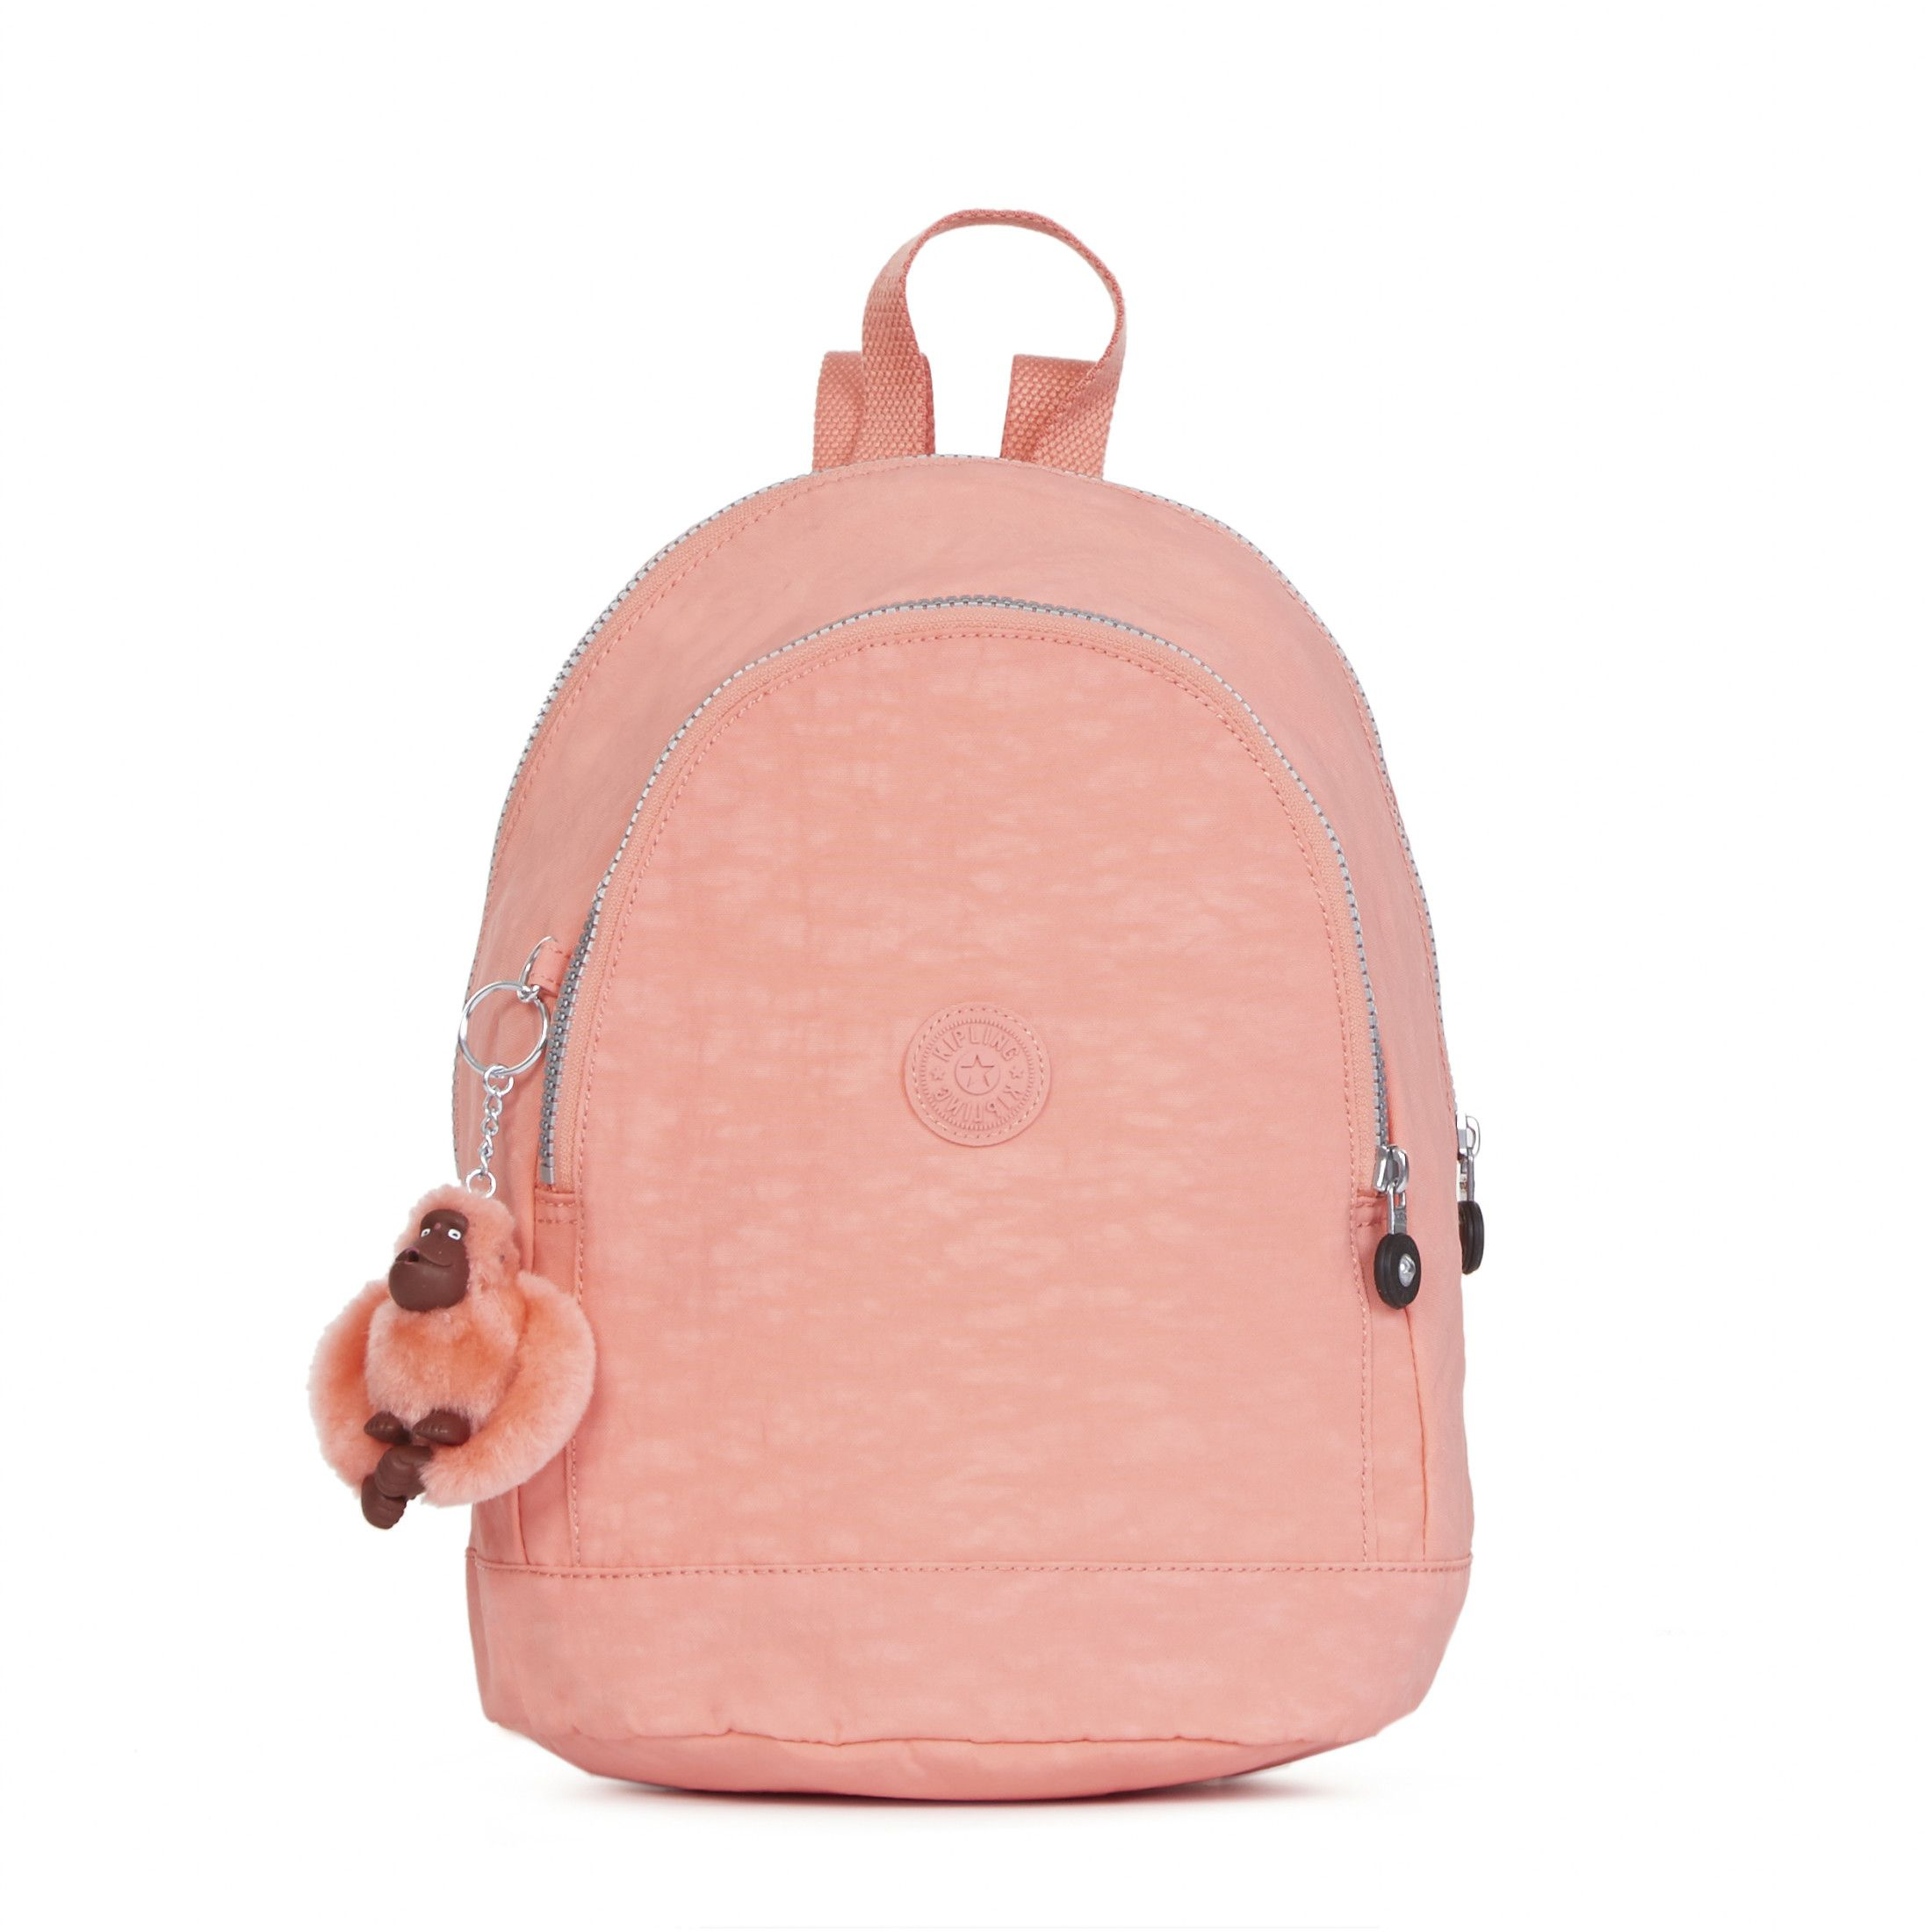 Yaretzi Small Backpack | Backpacks, Summer and Bag